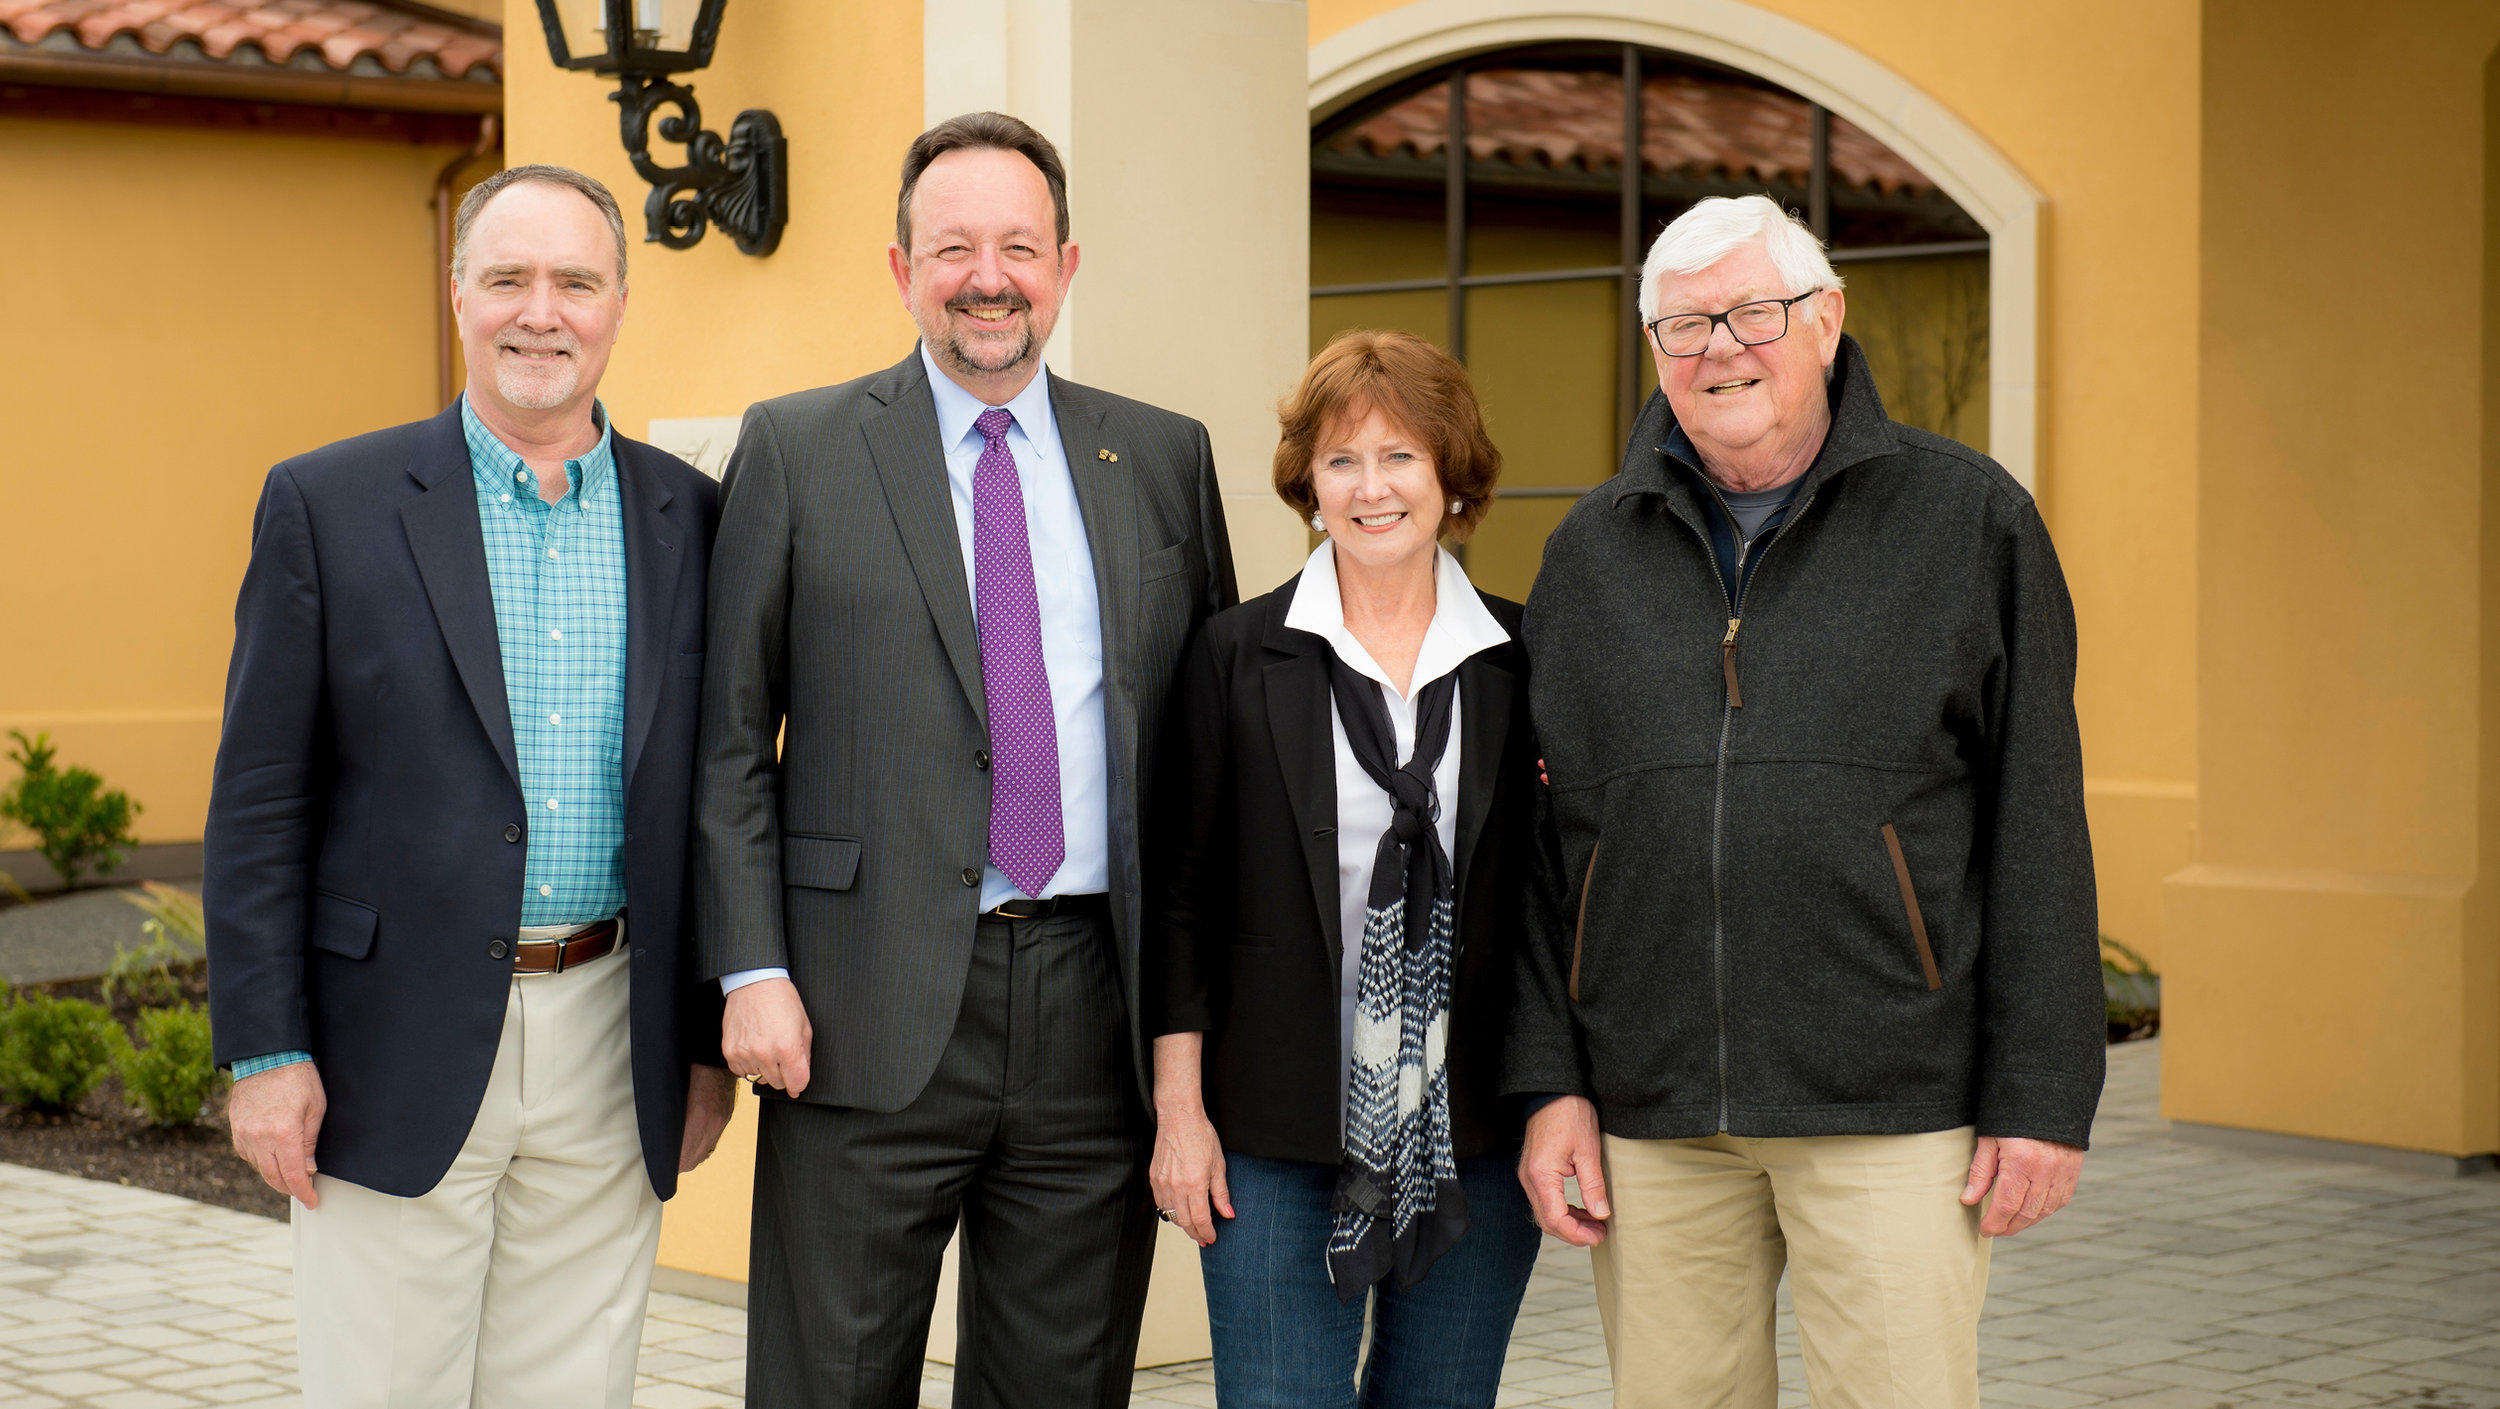 Evenstad Center for Wine Education at Linfield Launches Combined Bachelor's and Master's Degree in Wine Studies